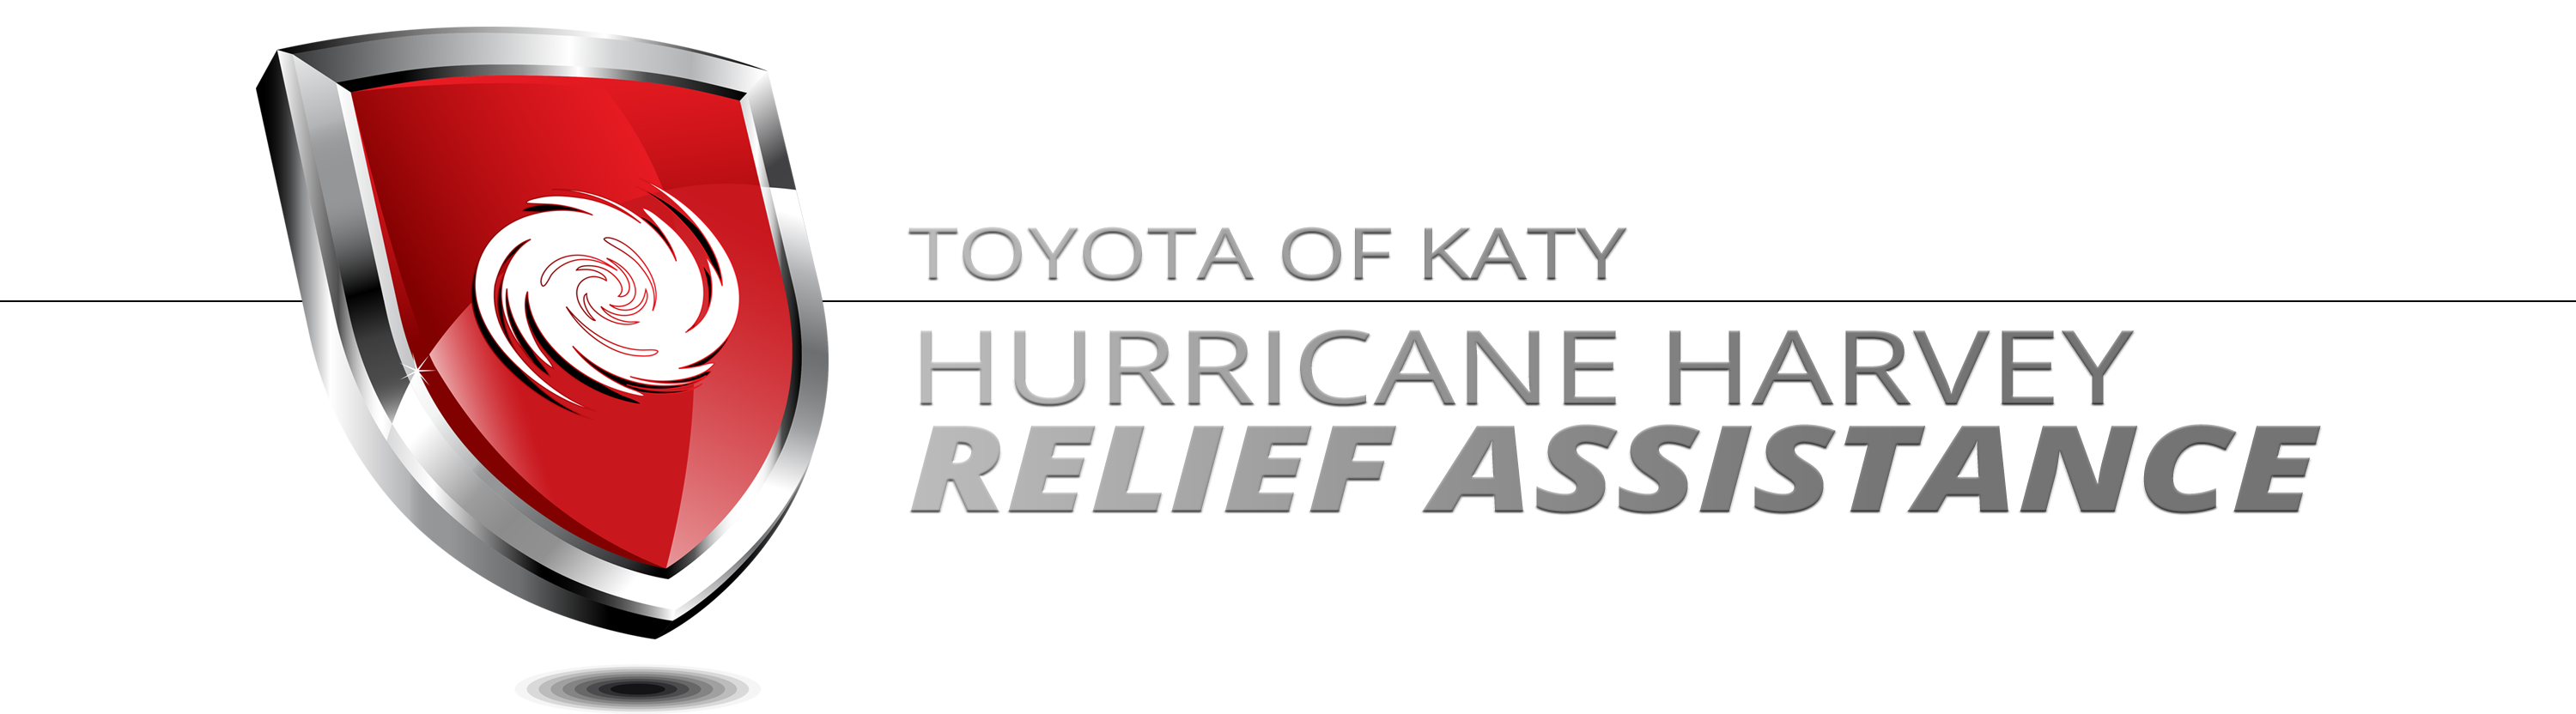 Flooded Car Relief Repair Or Replace At Don Mcgill Toyota Of Katy